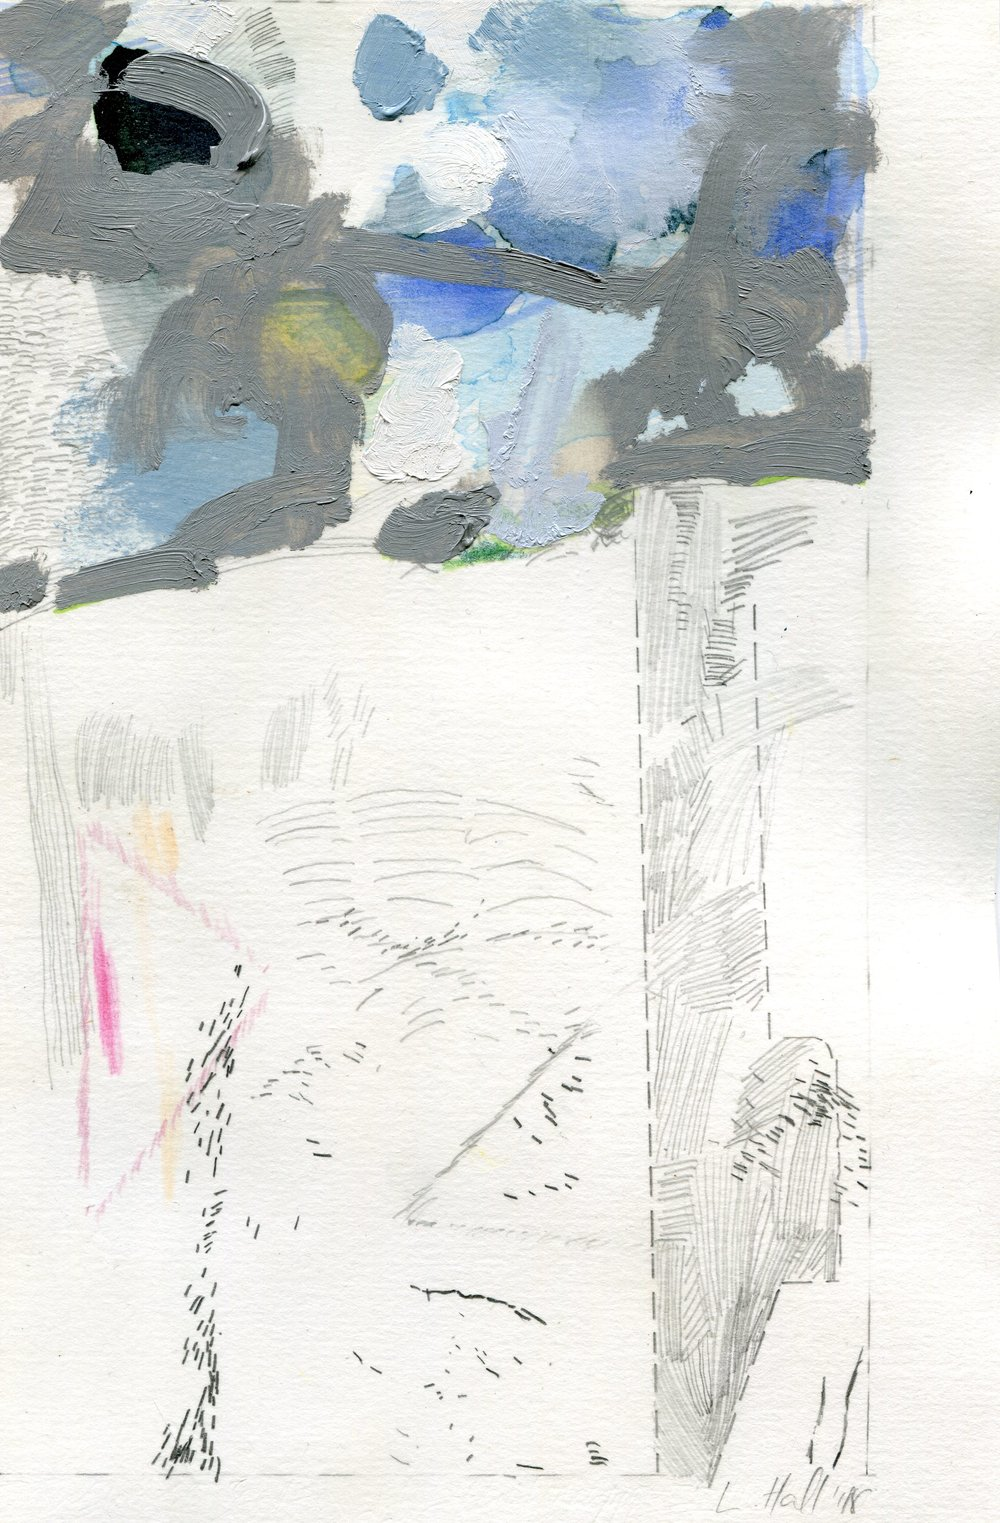 79a  Louise Hall  Transverse section of a landscape I  mixed media on paper